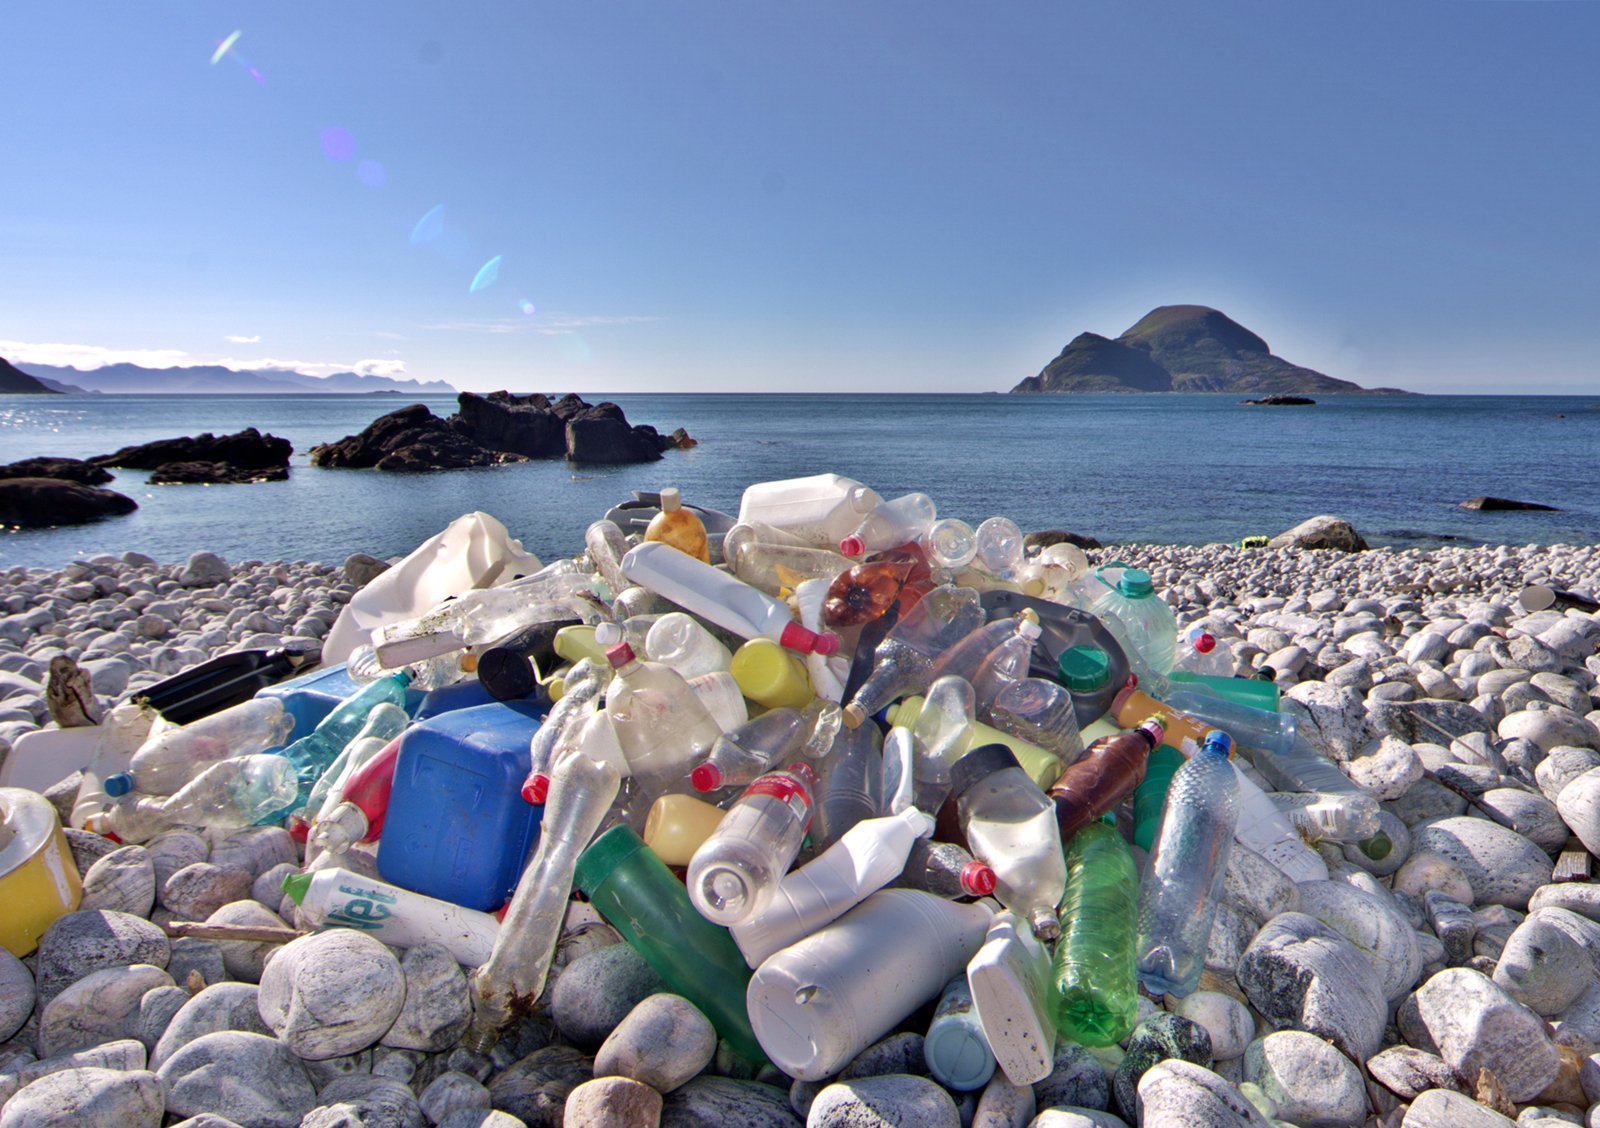 plastic bottles that have been pulled out of the sea